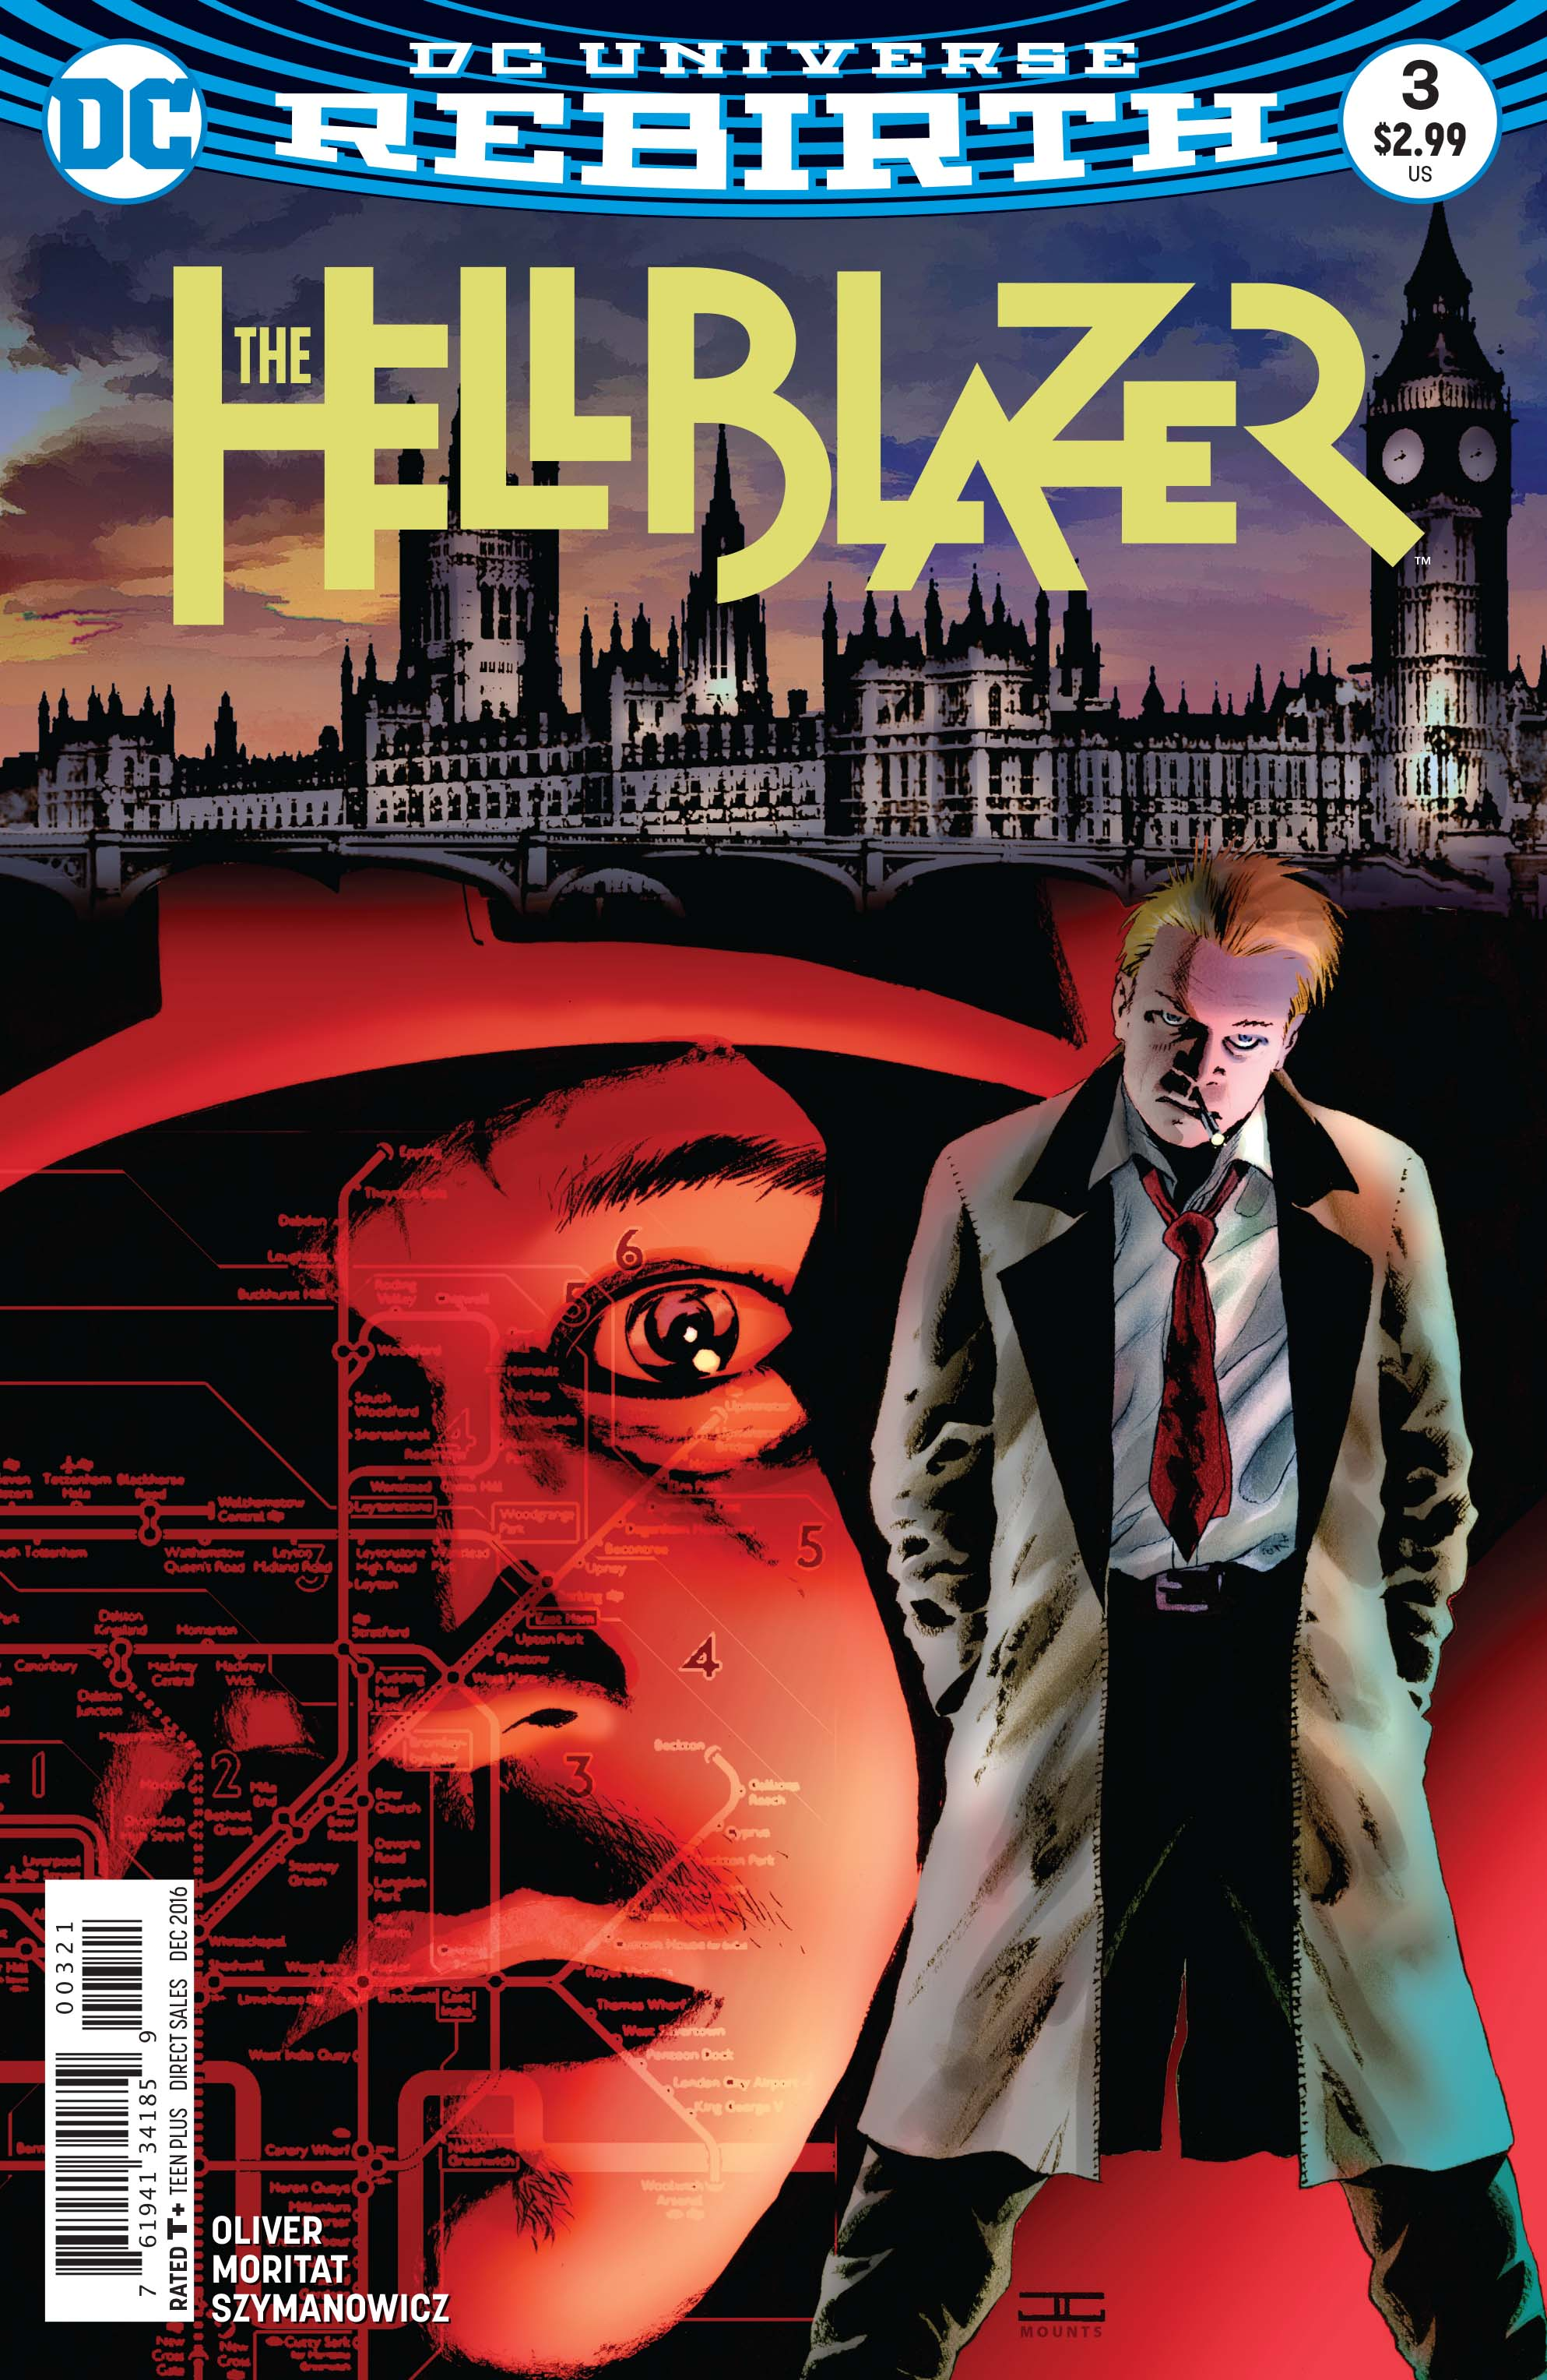 The Hellblazer #3 Review